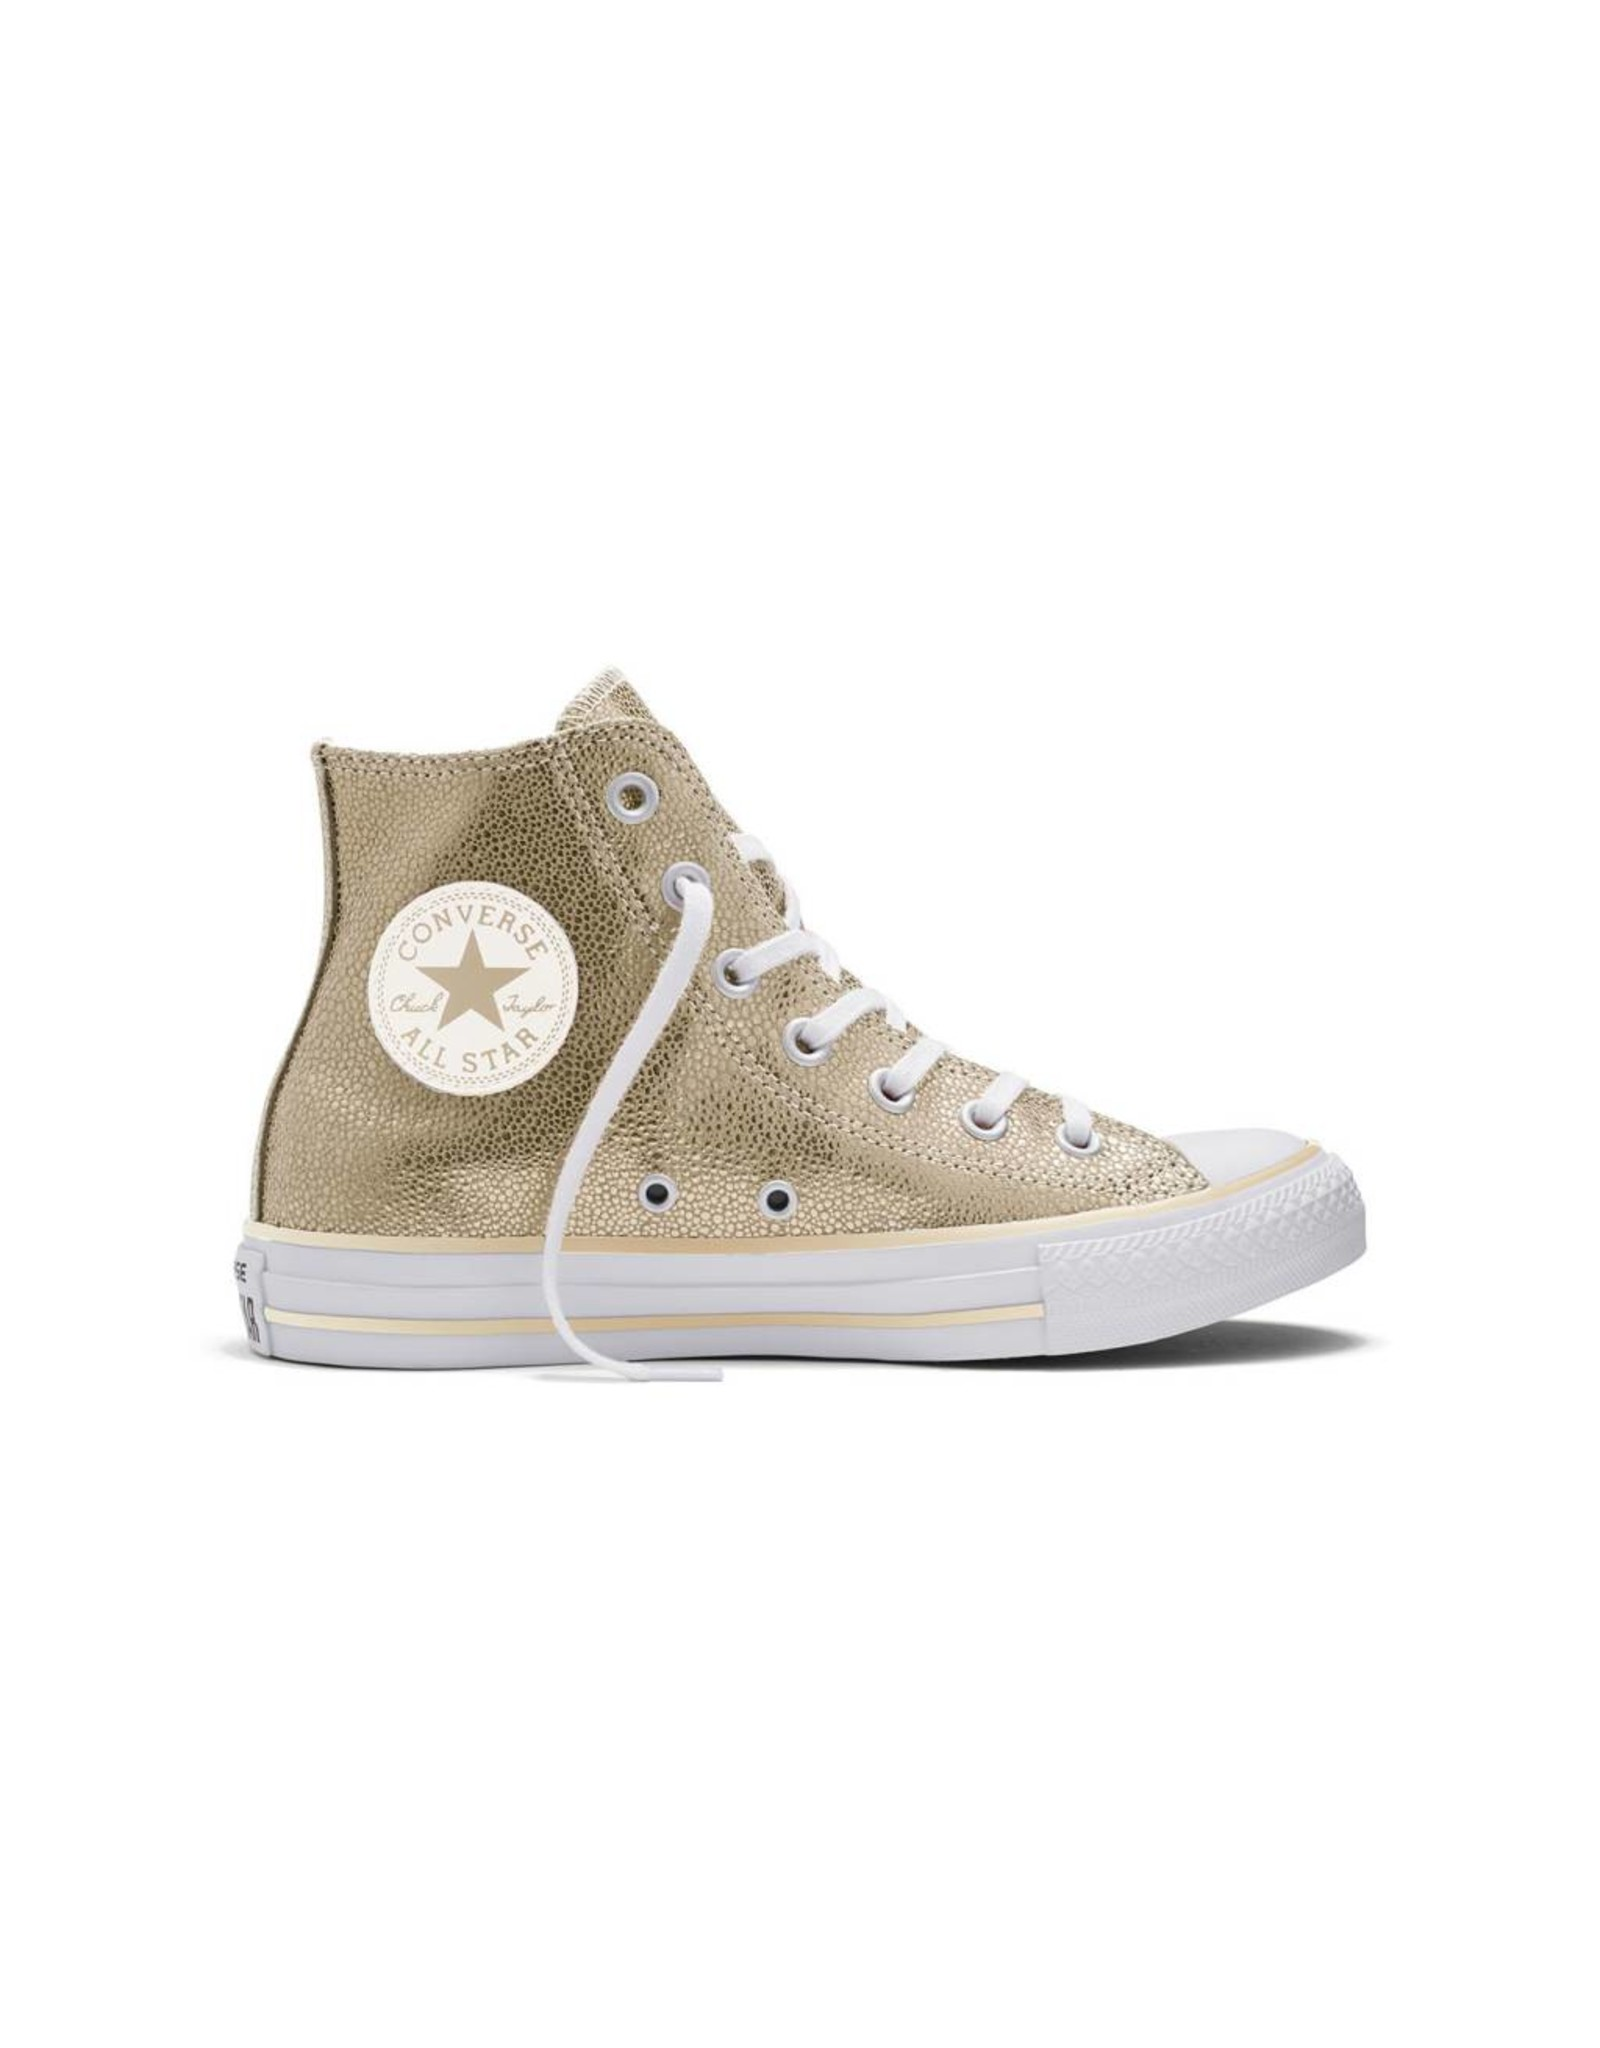 CONVERSE CHUCK TAYLOR STINGRAY METALLIC HI LIGHT GOLD C16MEG-553344C